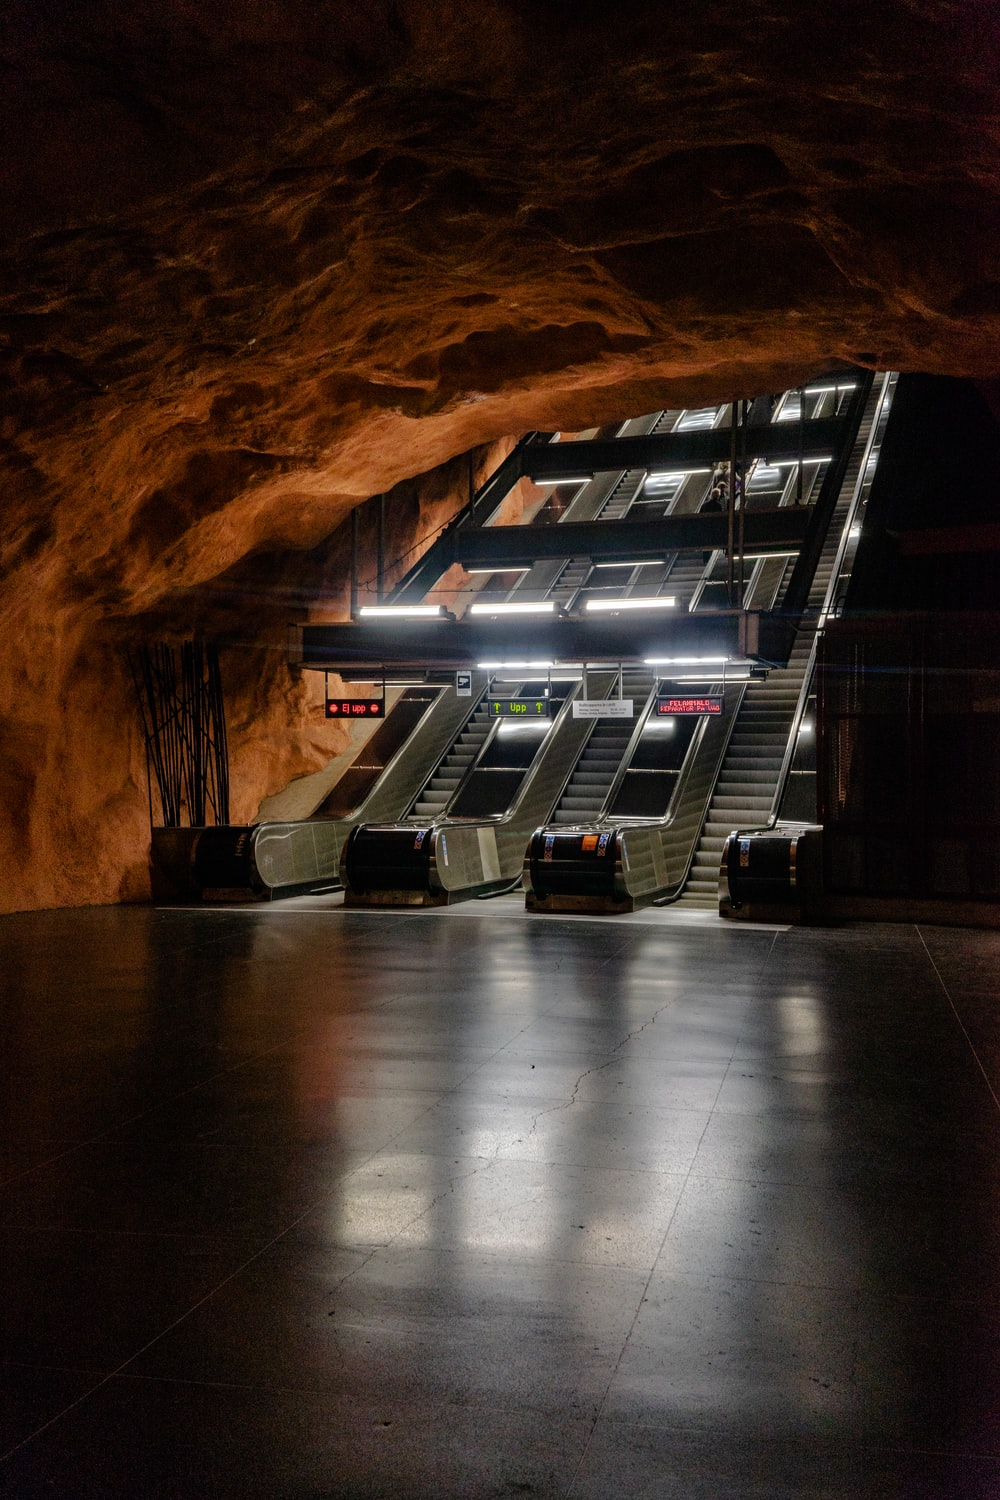 underground escalator with lights